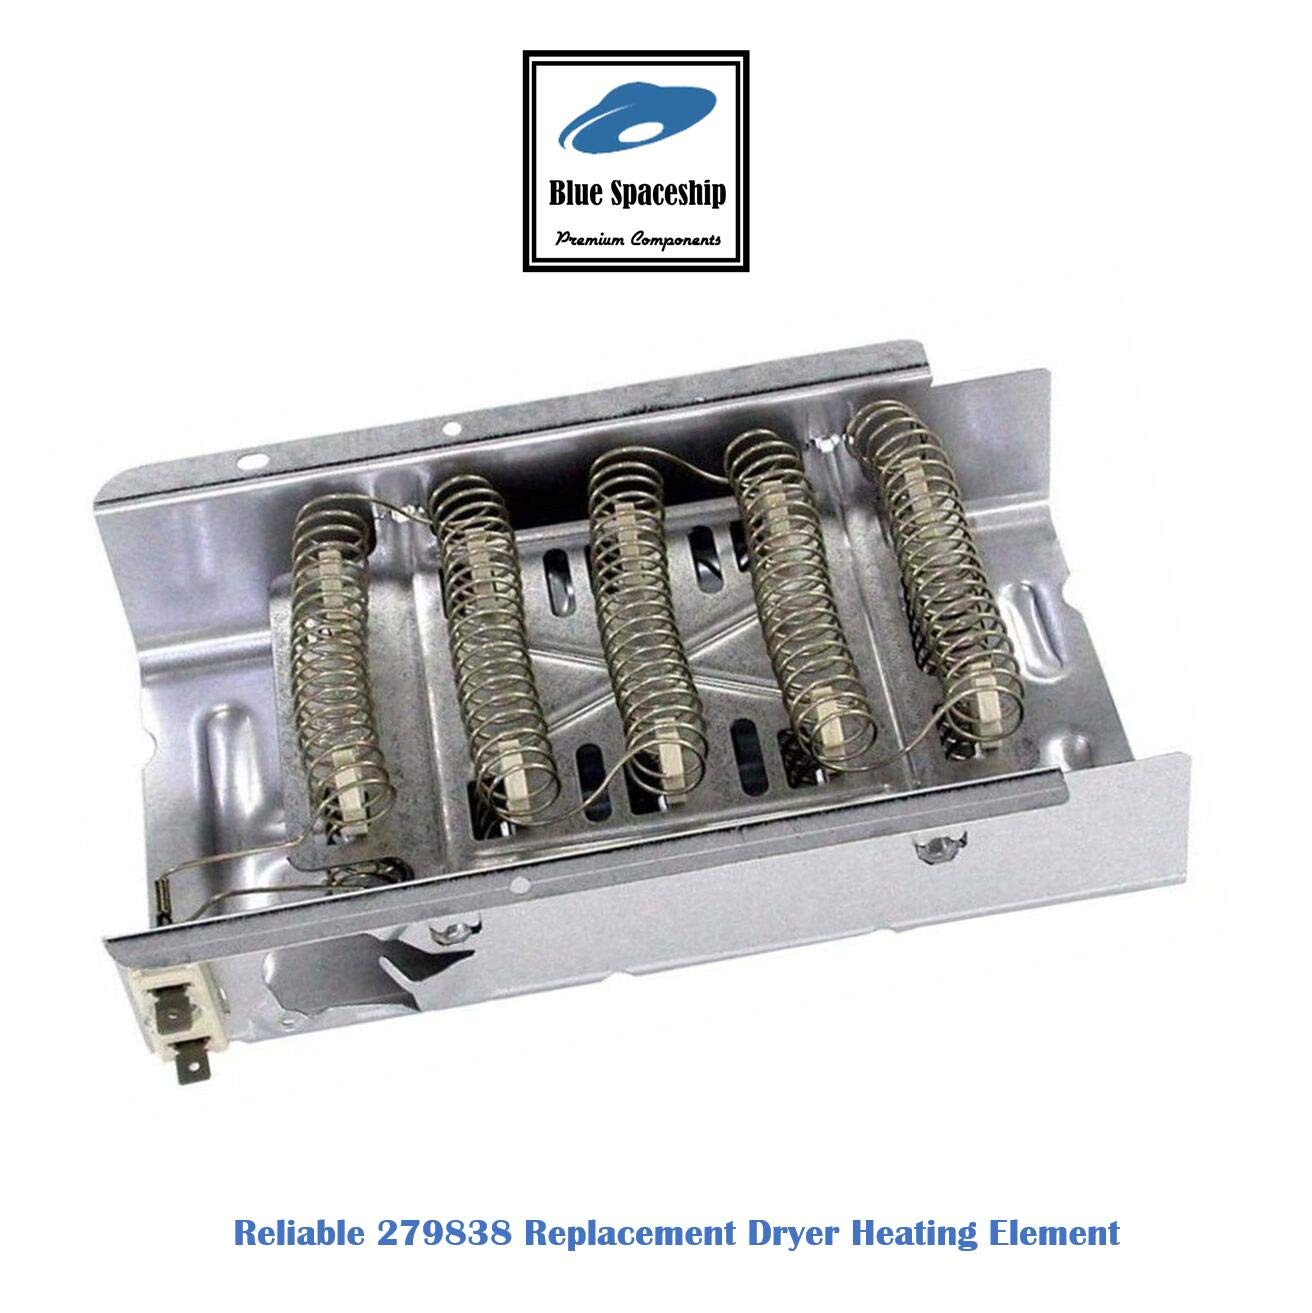 Reliable 279838 Dryer Heating Element Replacement Part Fit for Whirlpool, KitchenAid, Roper, Maytag Dryers, Replace part No. 3403585, 8565582, PS3343130 & AP3094254